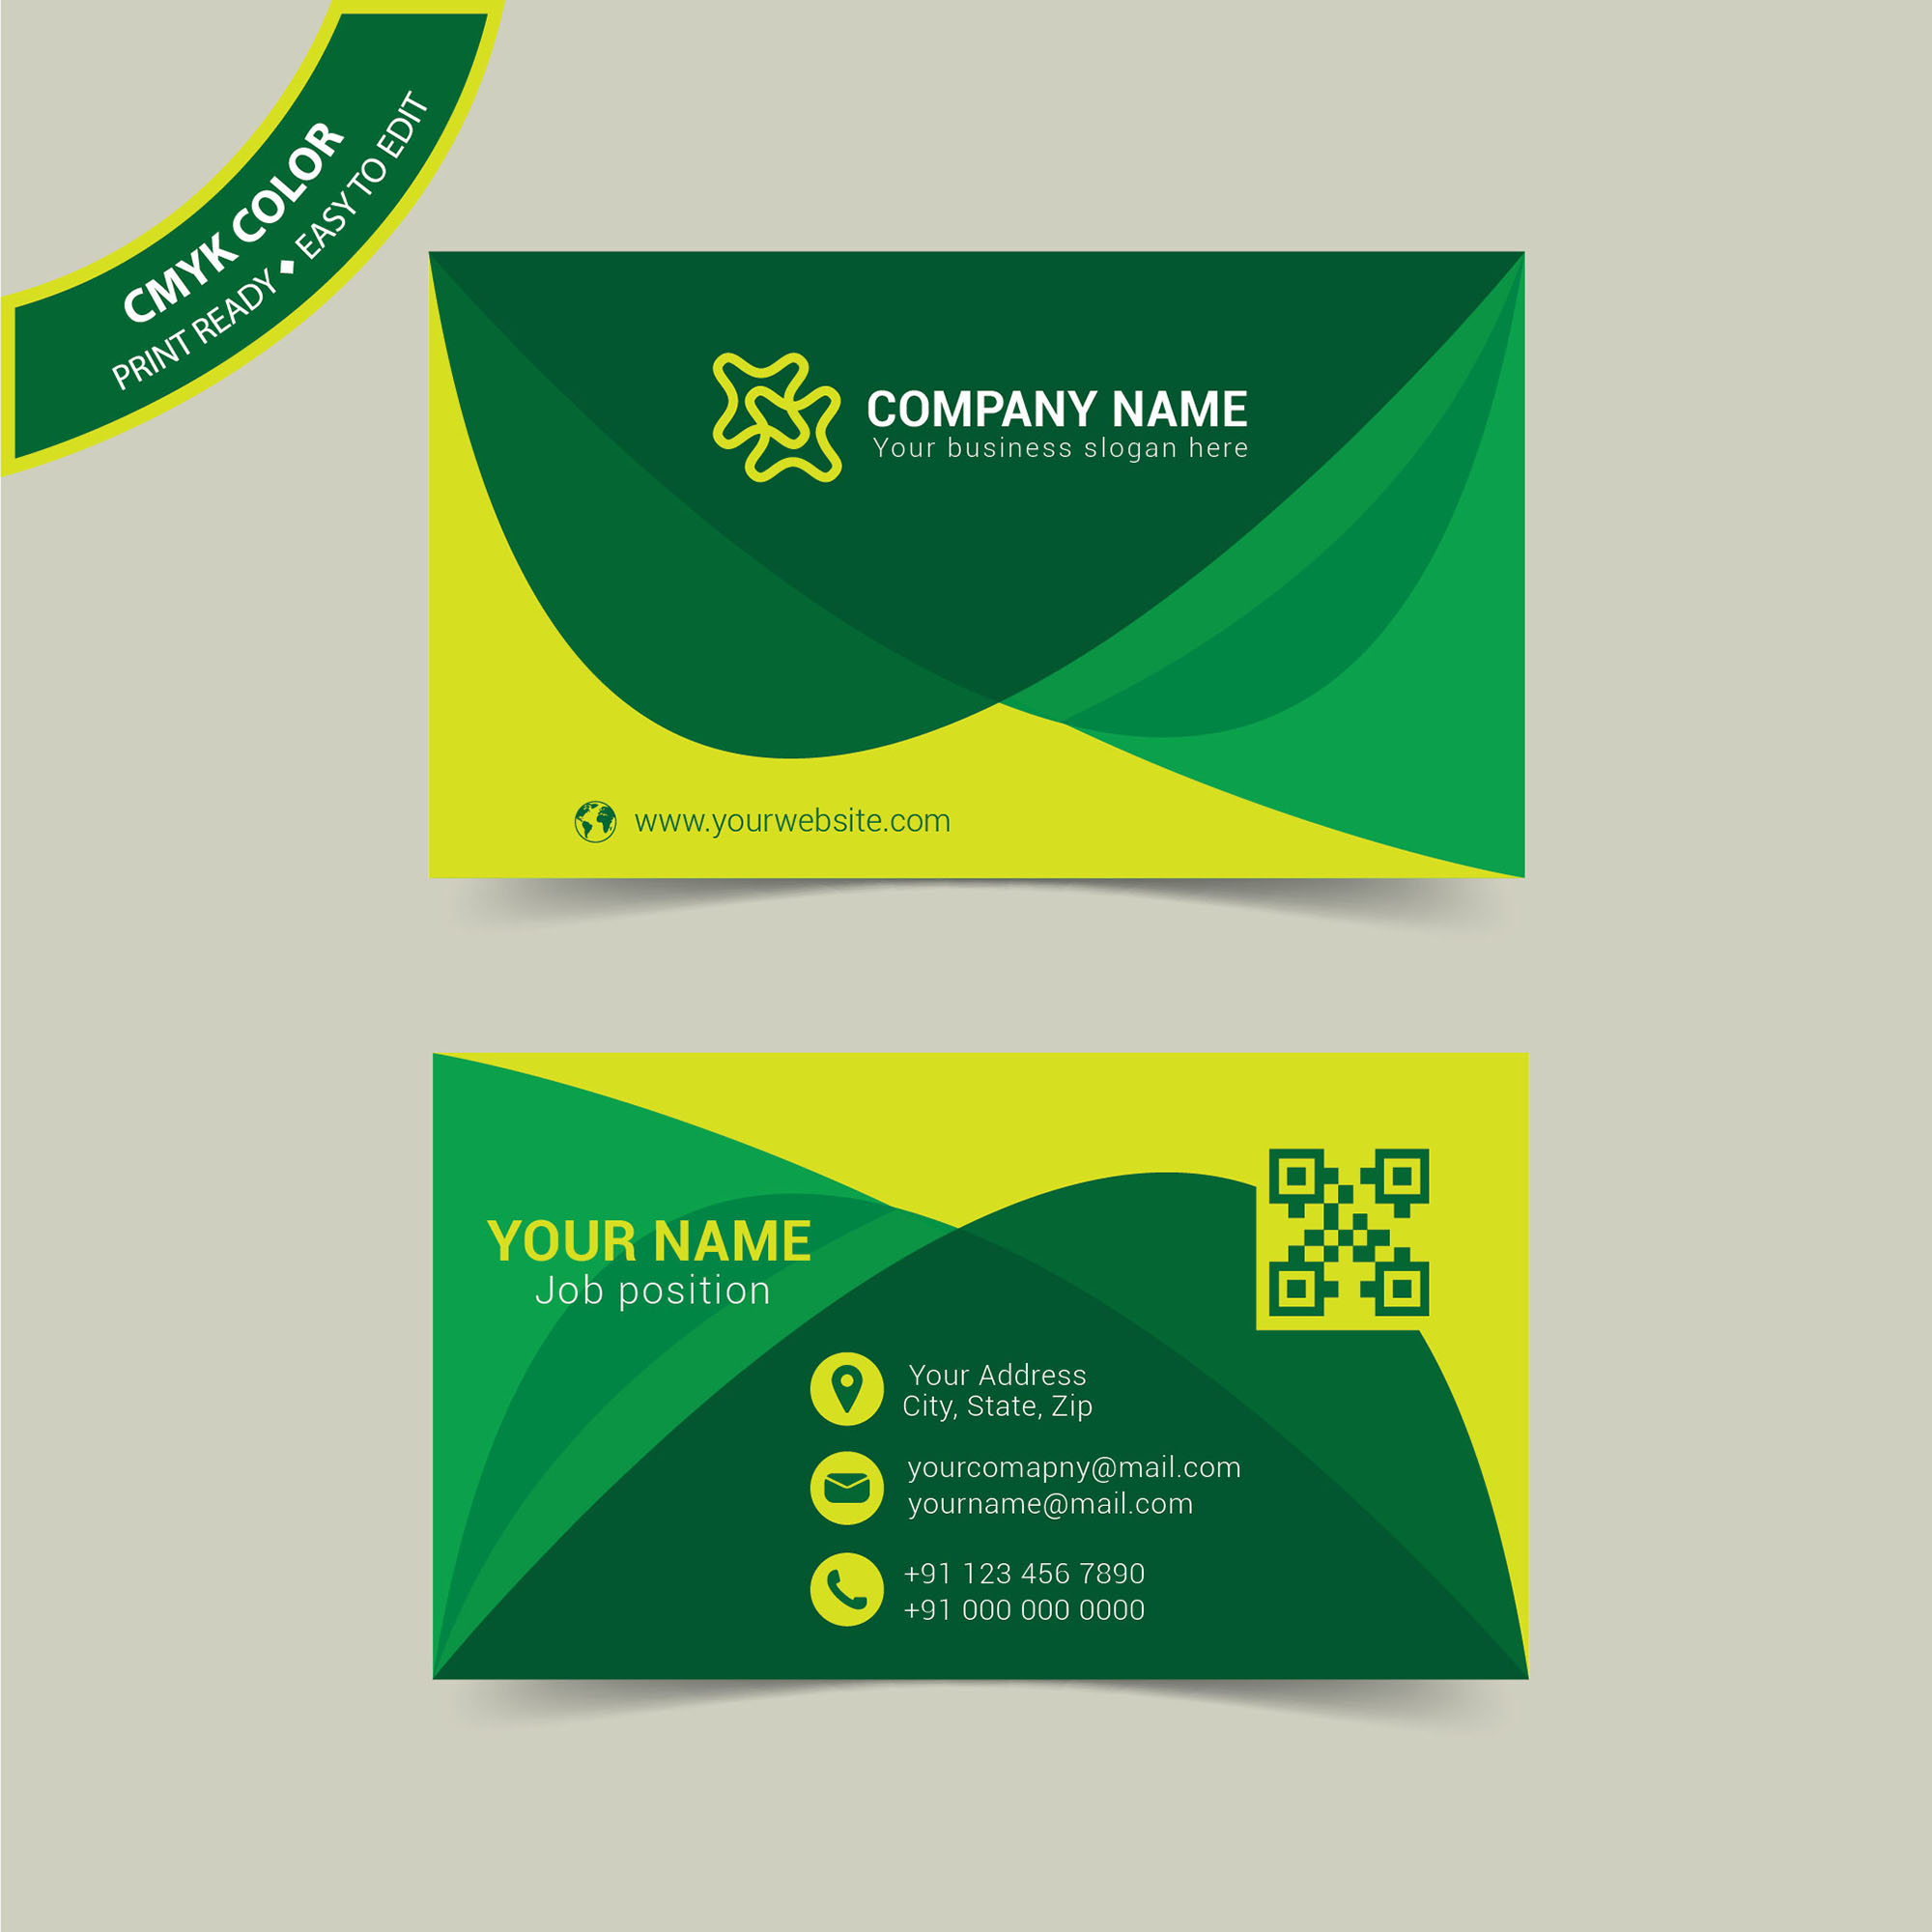 Elegant business card design free download wisxi business card business cards business card design business card template design templates wajeb Gallery